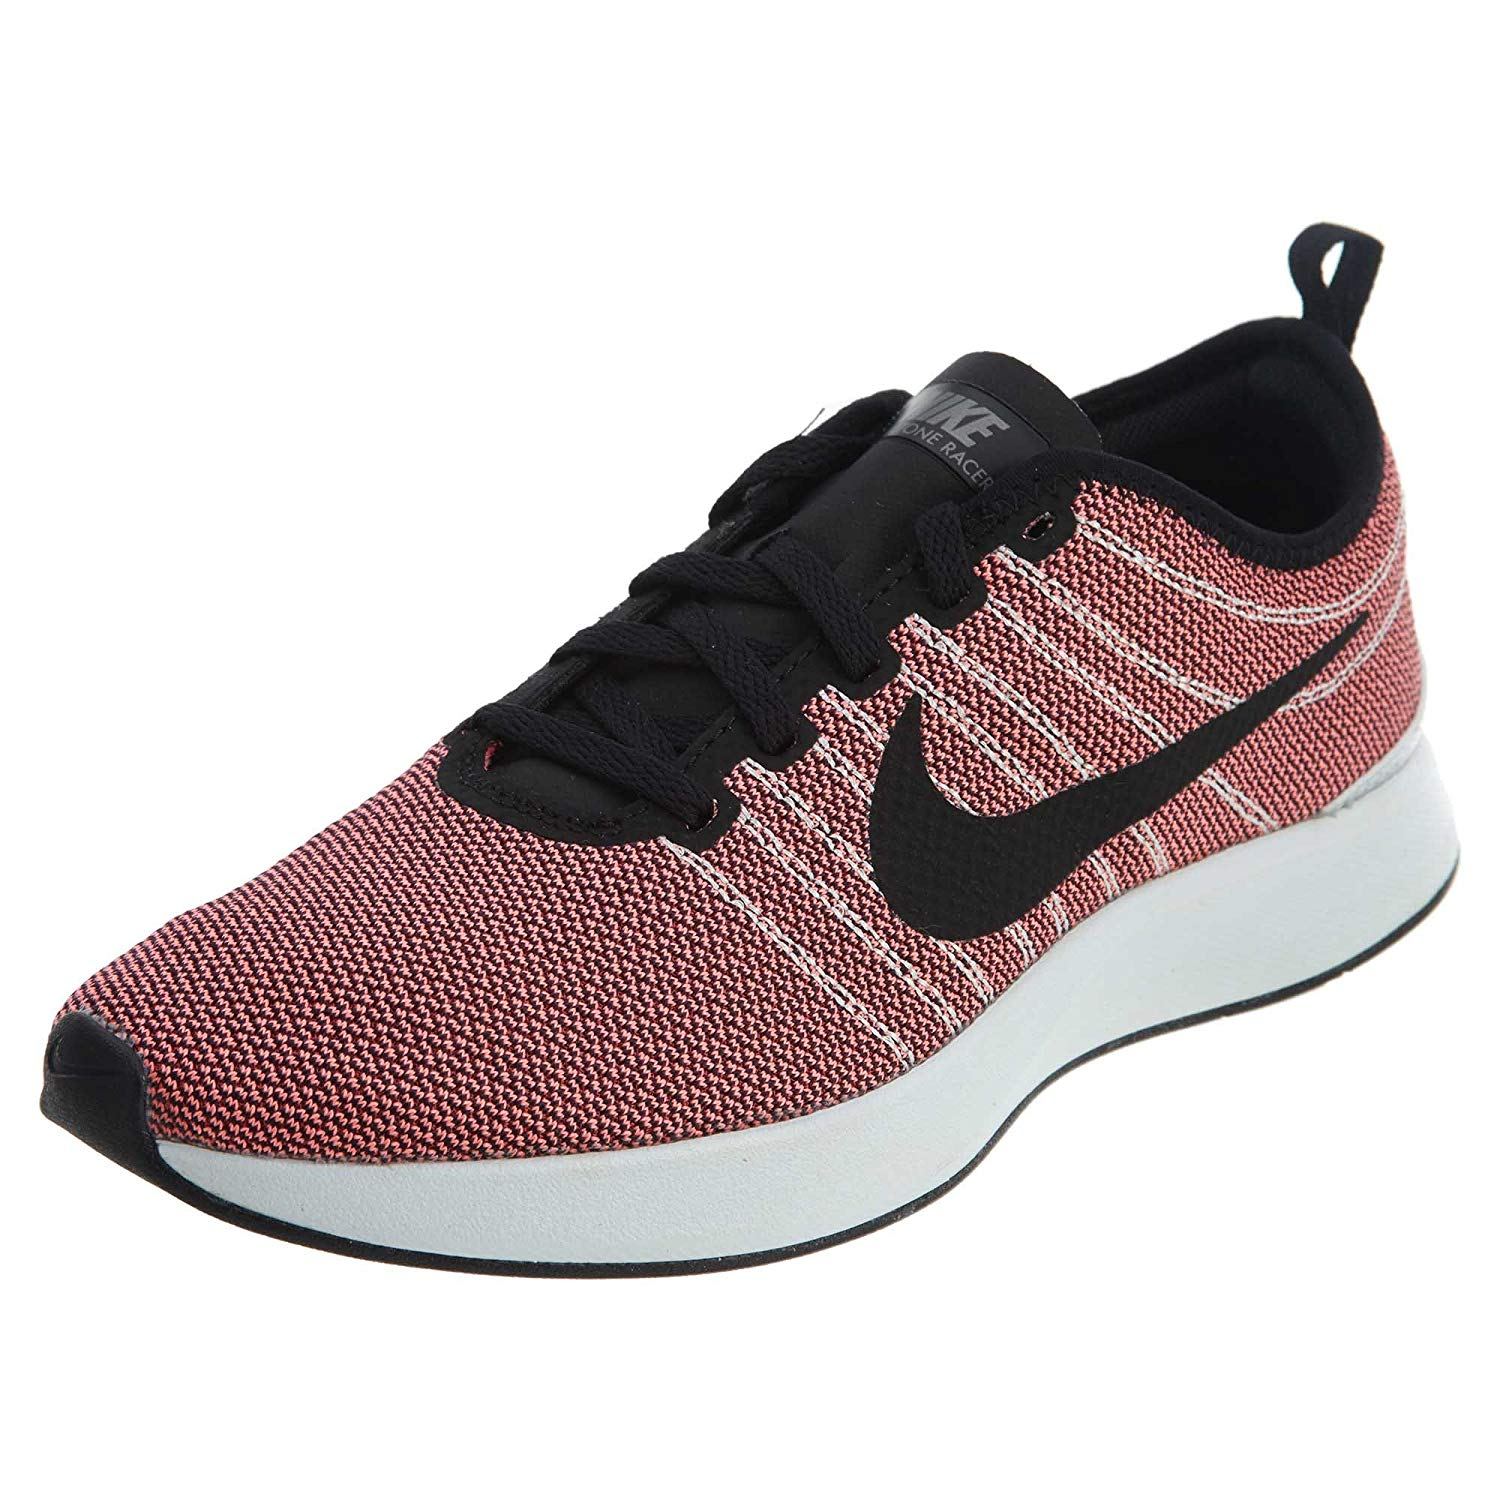 Details about Nike Womens Dualtone Racer Low Top Lace Up Running Sneaker 99d3959286